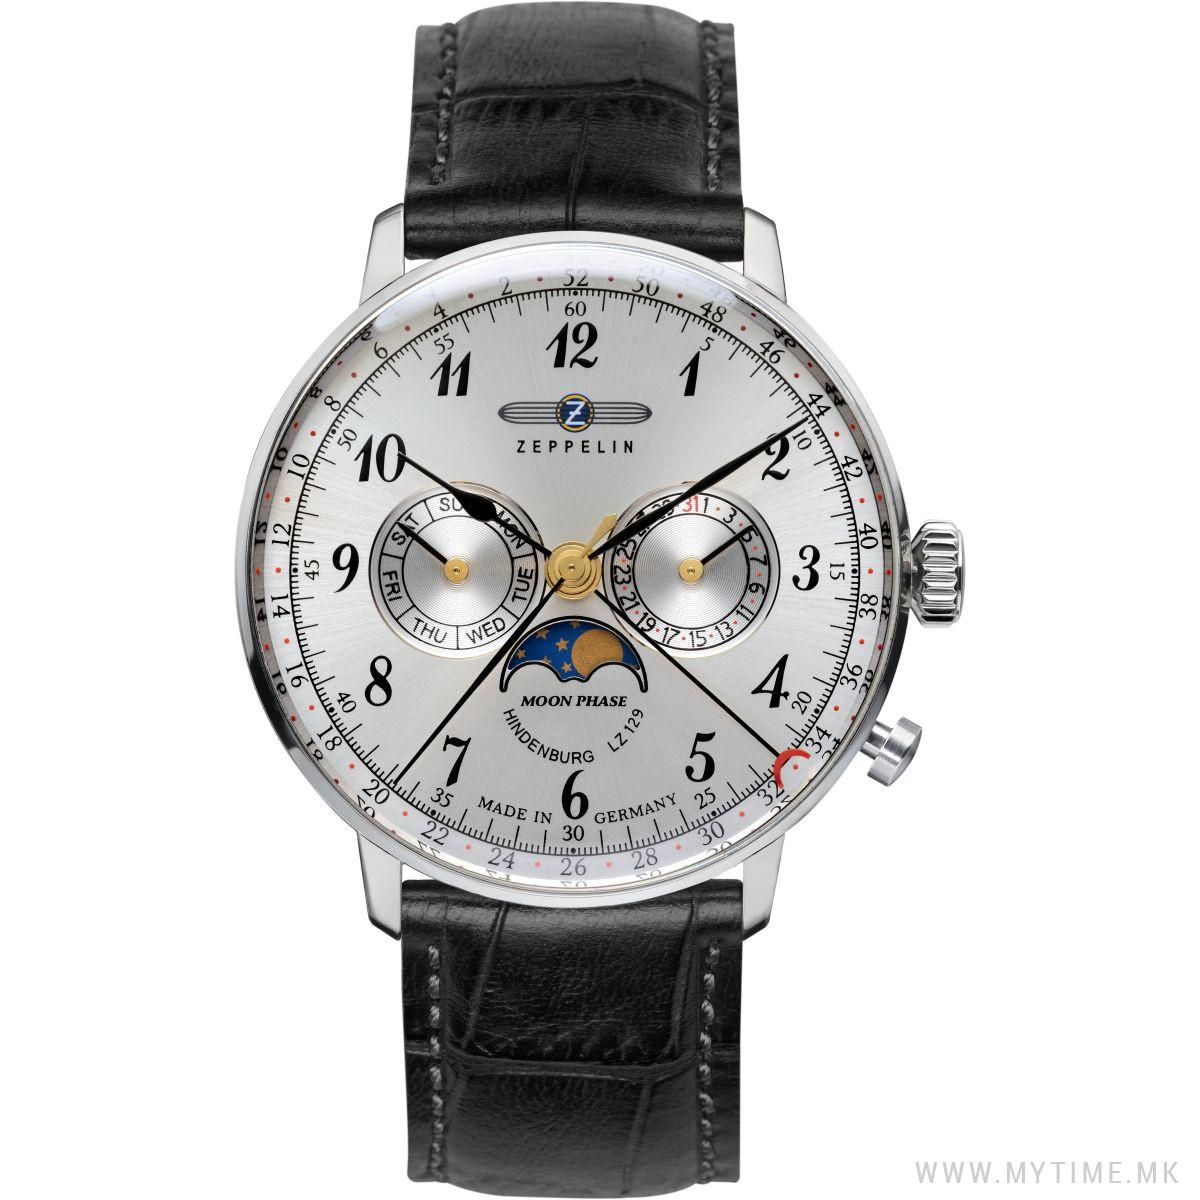 7036-1 Hindenburg Moonphase